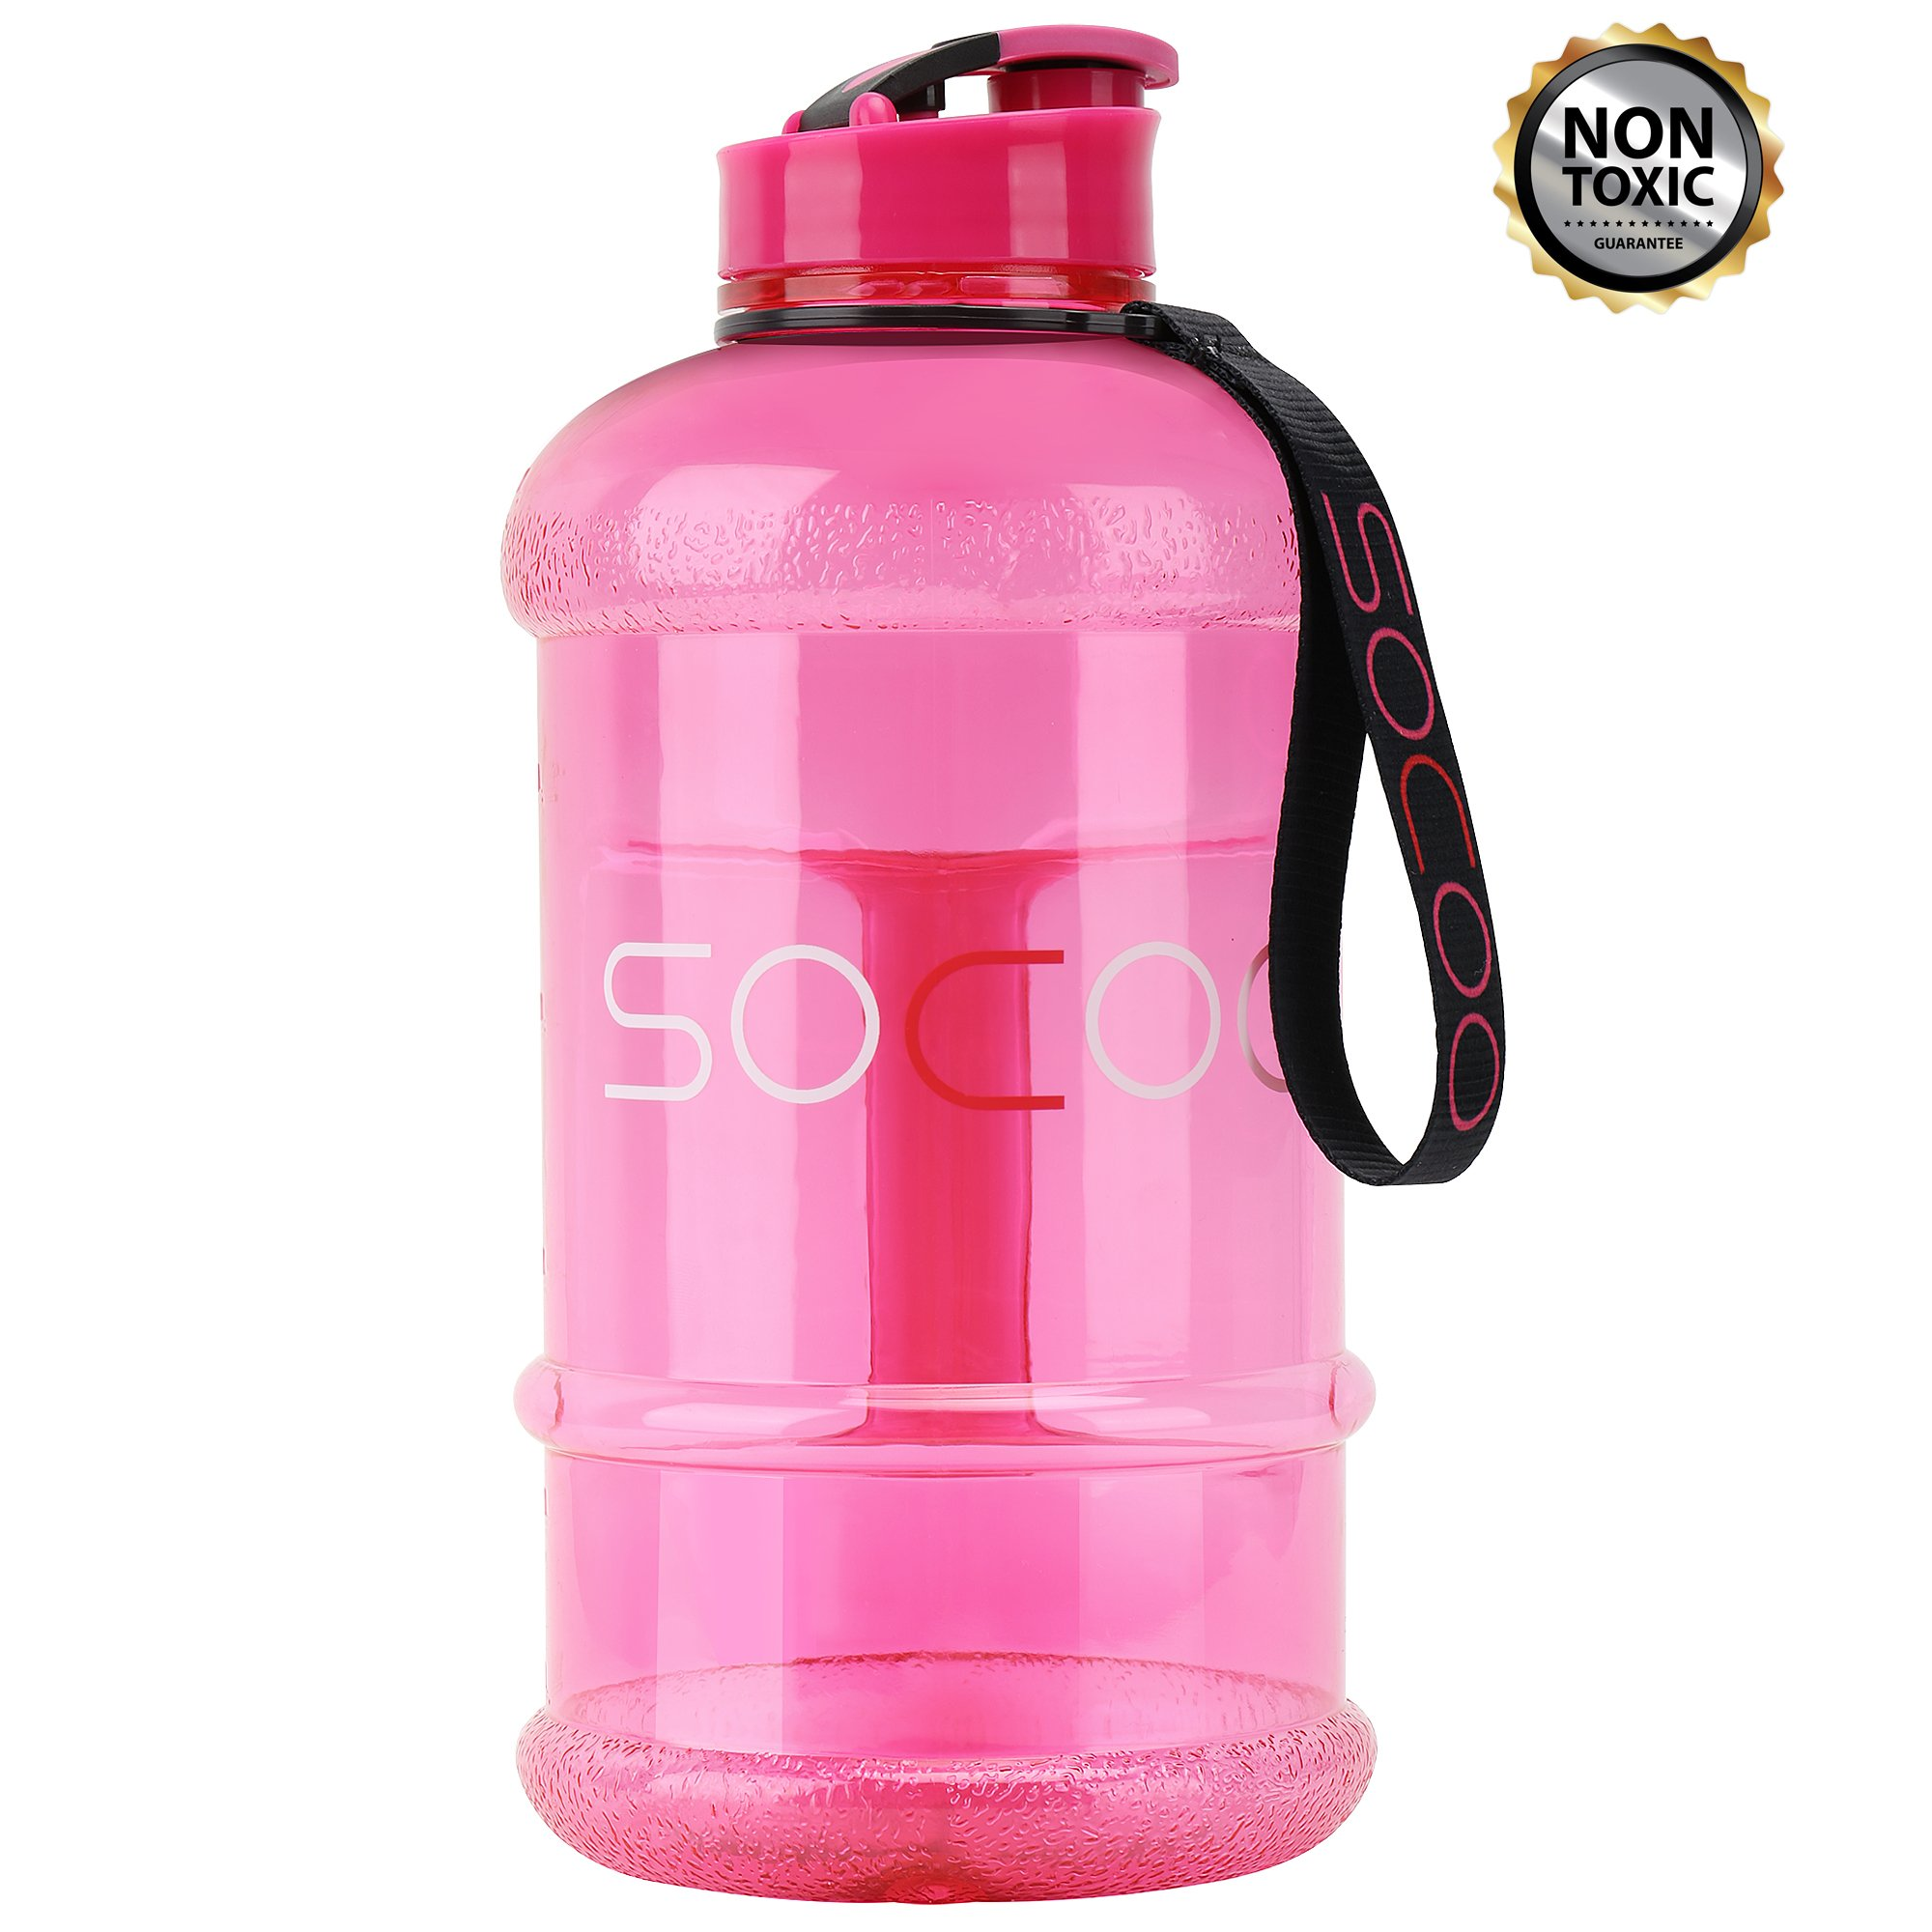 1 Liter Water Bottle for Kids Girl with Strap Durable Non Toxic Lightweight Plastic Leak Proof for School Athletic Outdoor BPA Free Sports Water Bottle (1.0L-Transparent Pink)